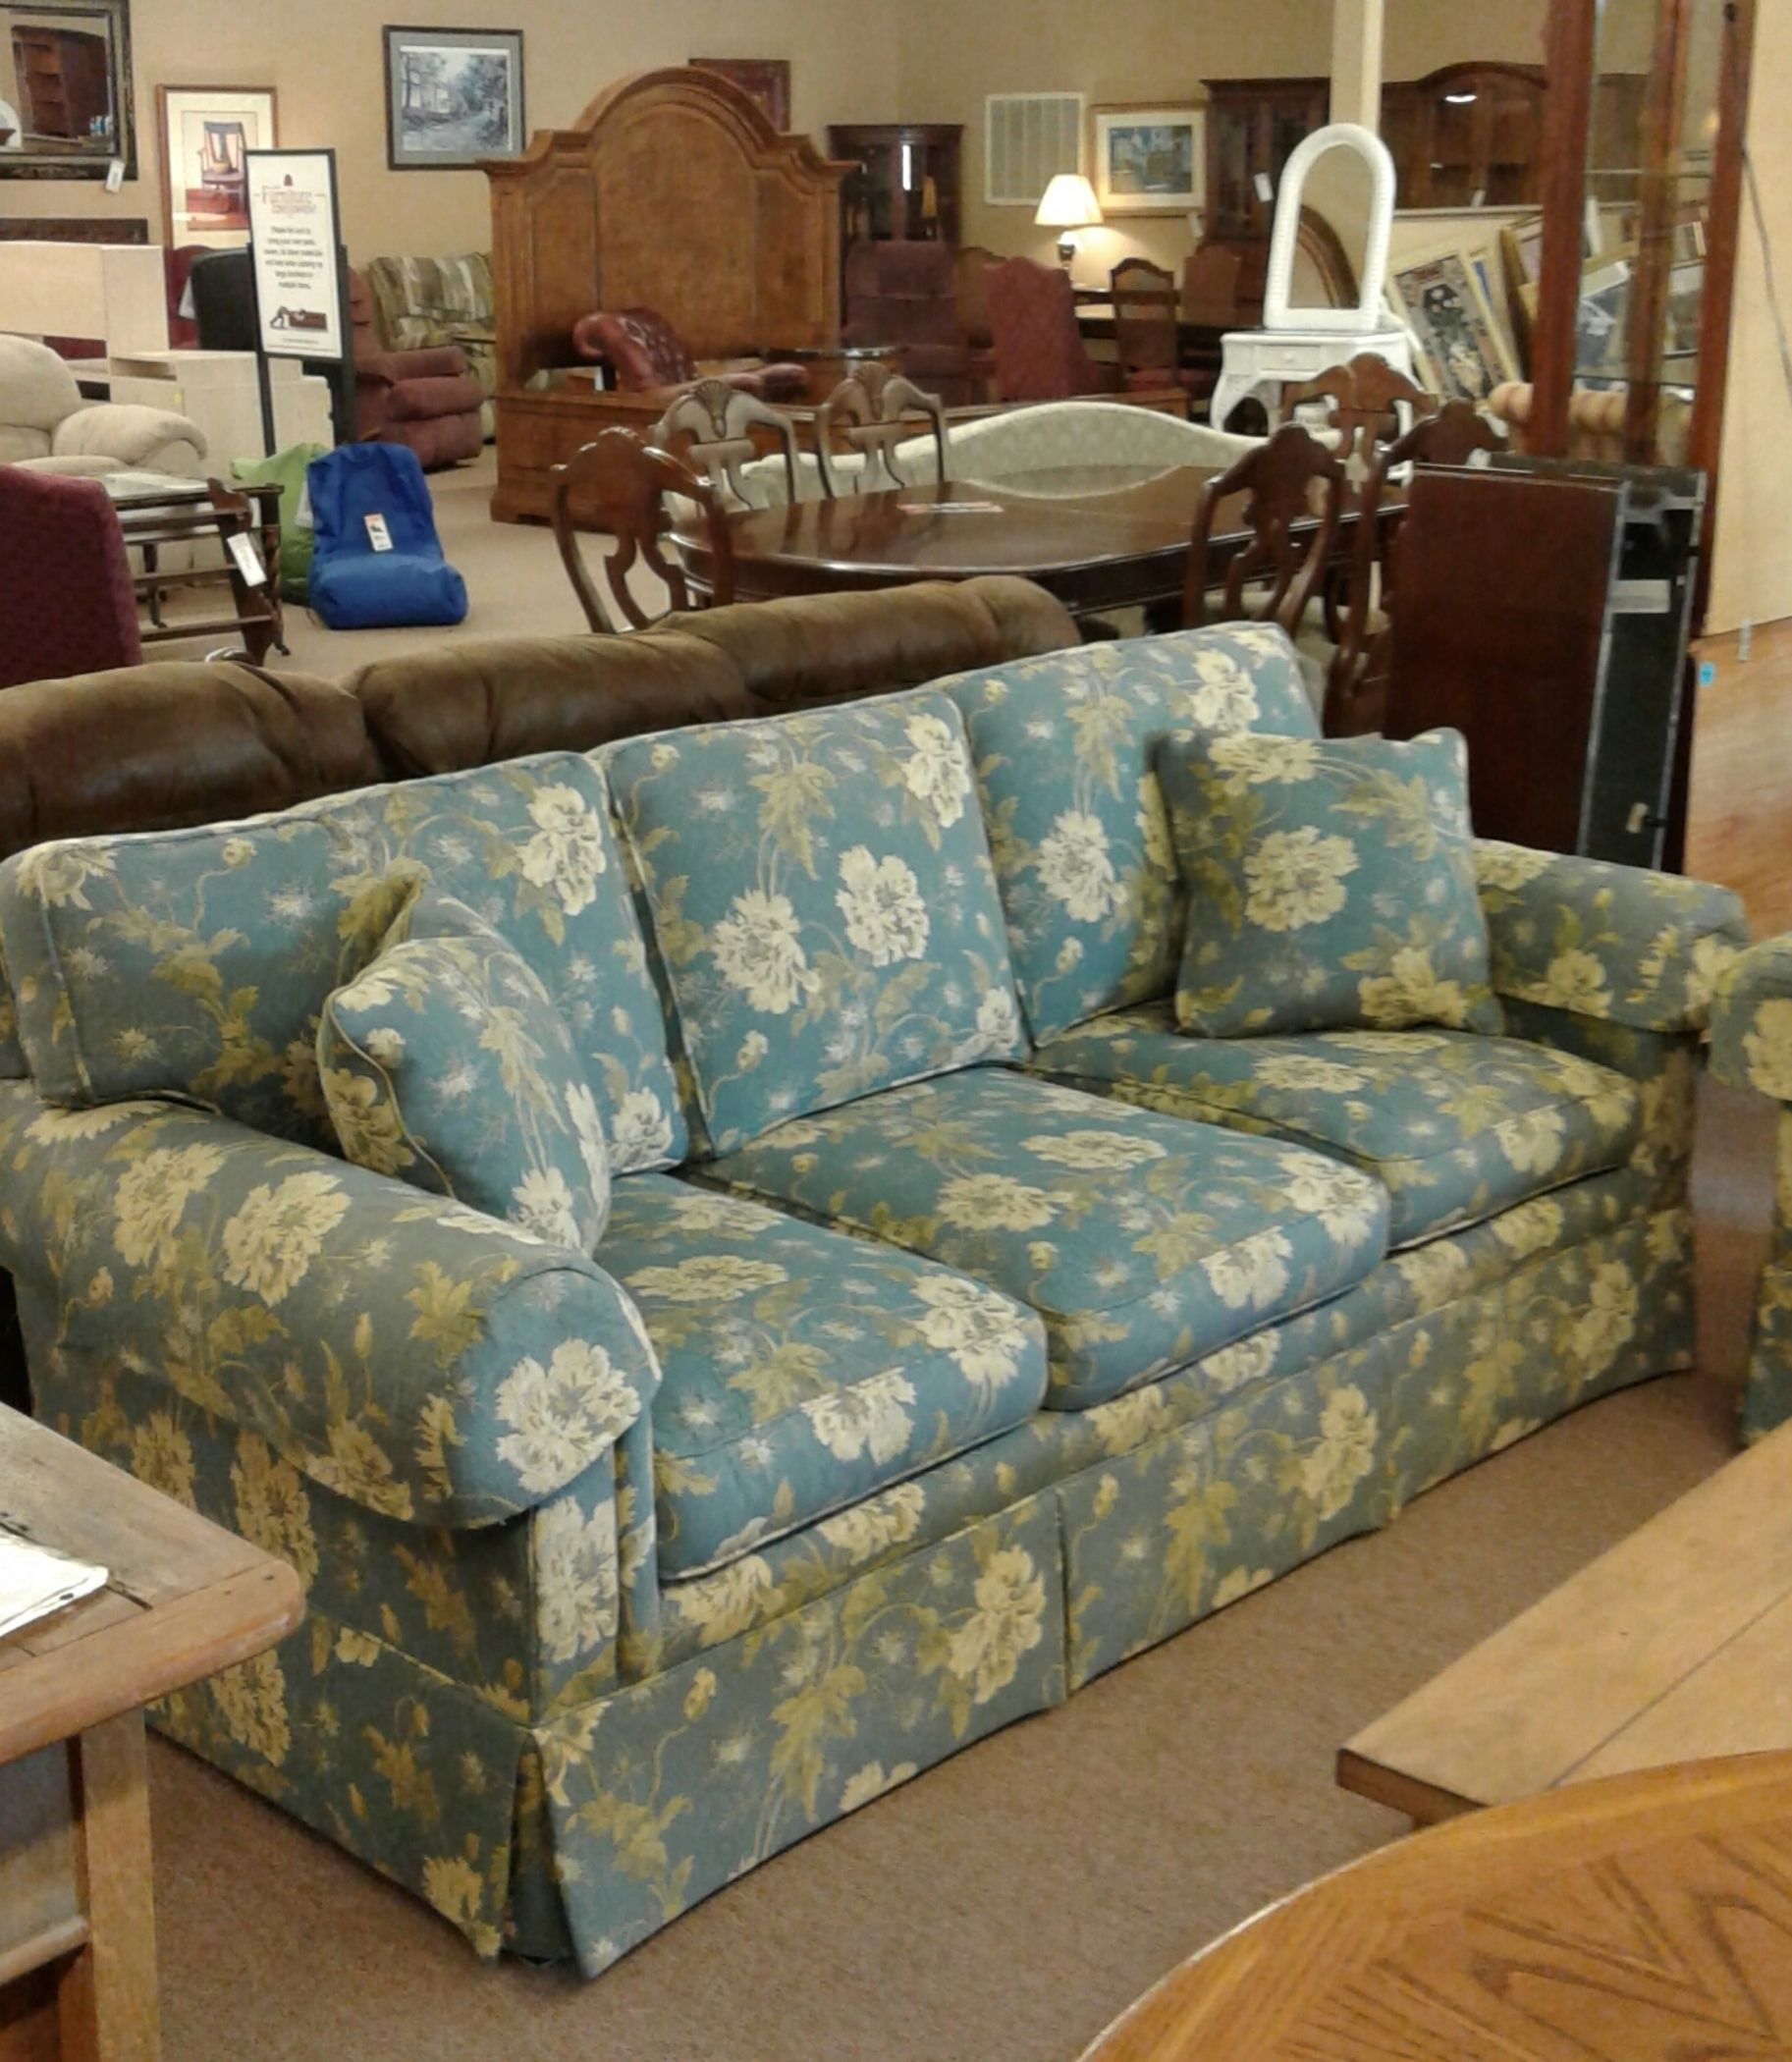 Sherrill Blue Floral Sofa   Delmarva Furniture Consignment Regarding Floral Sofas And Chairs (View 1 of 15)